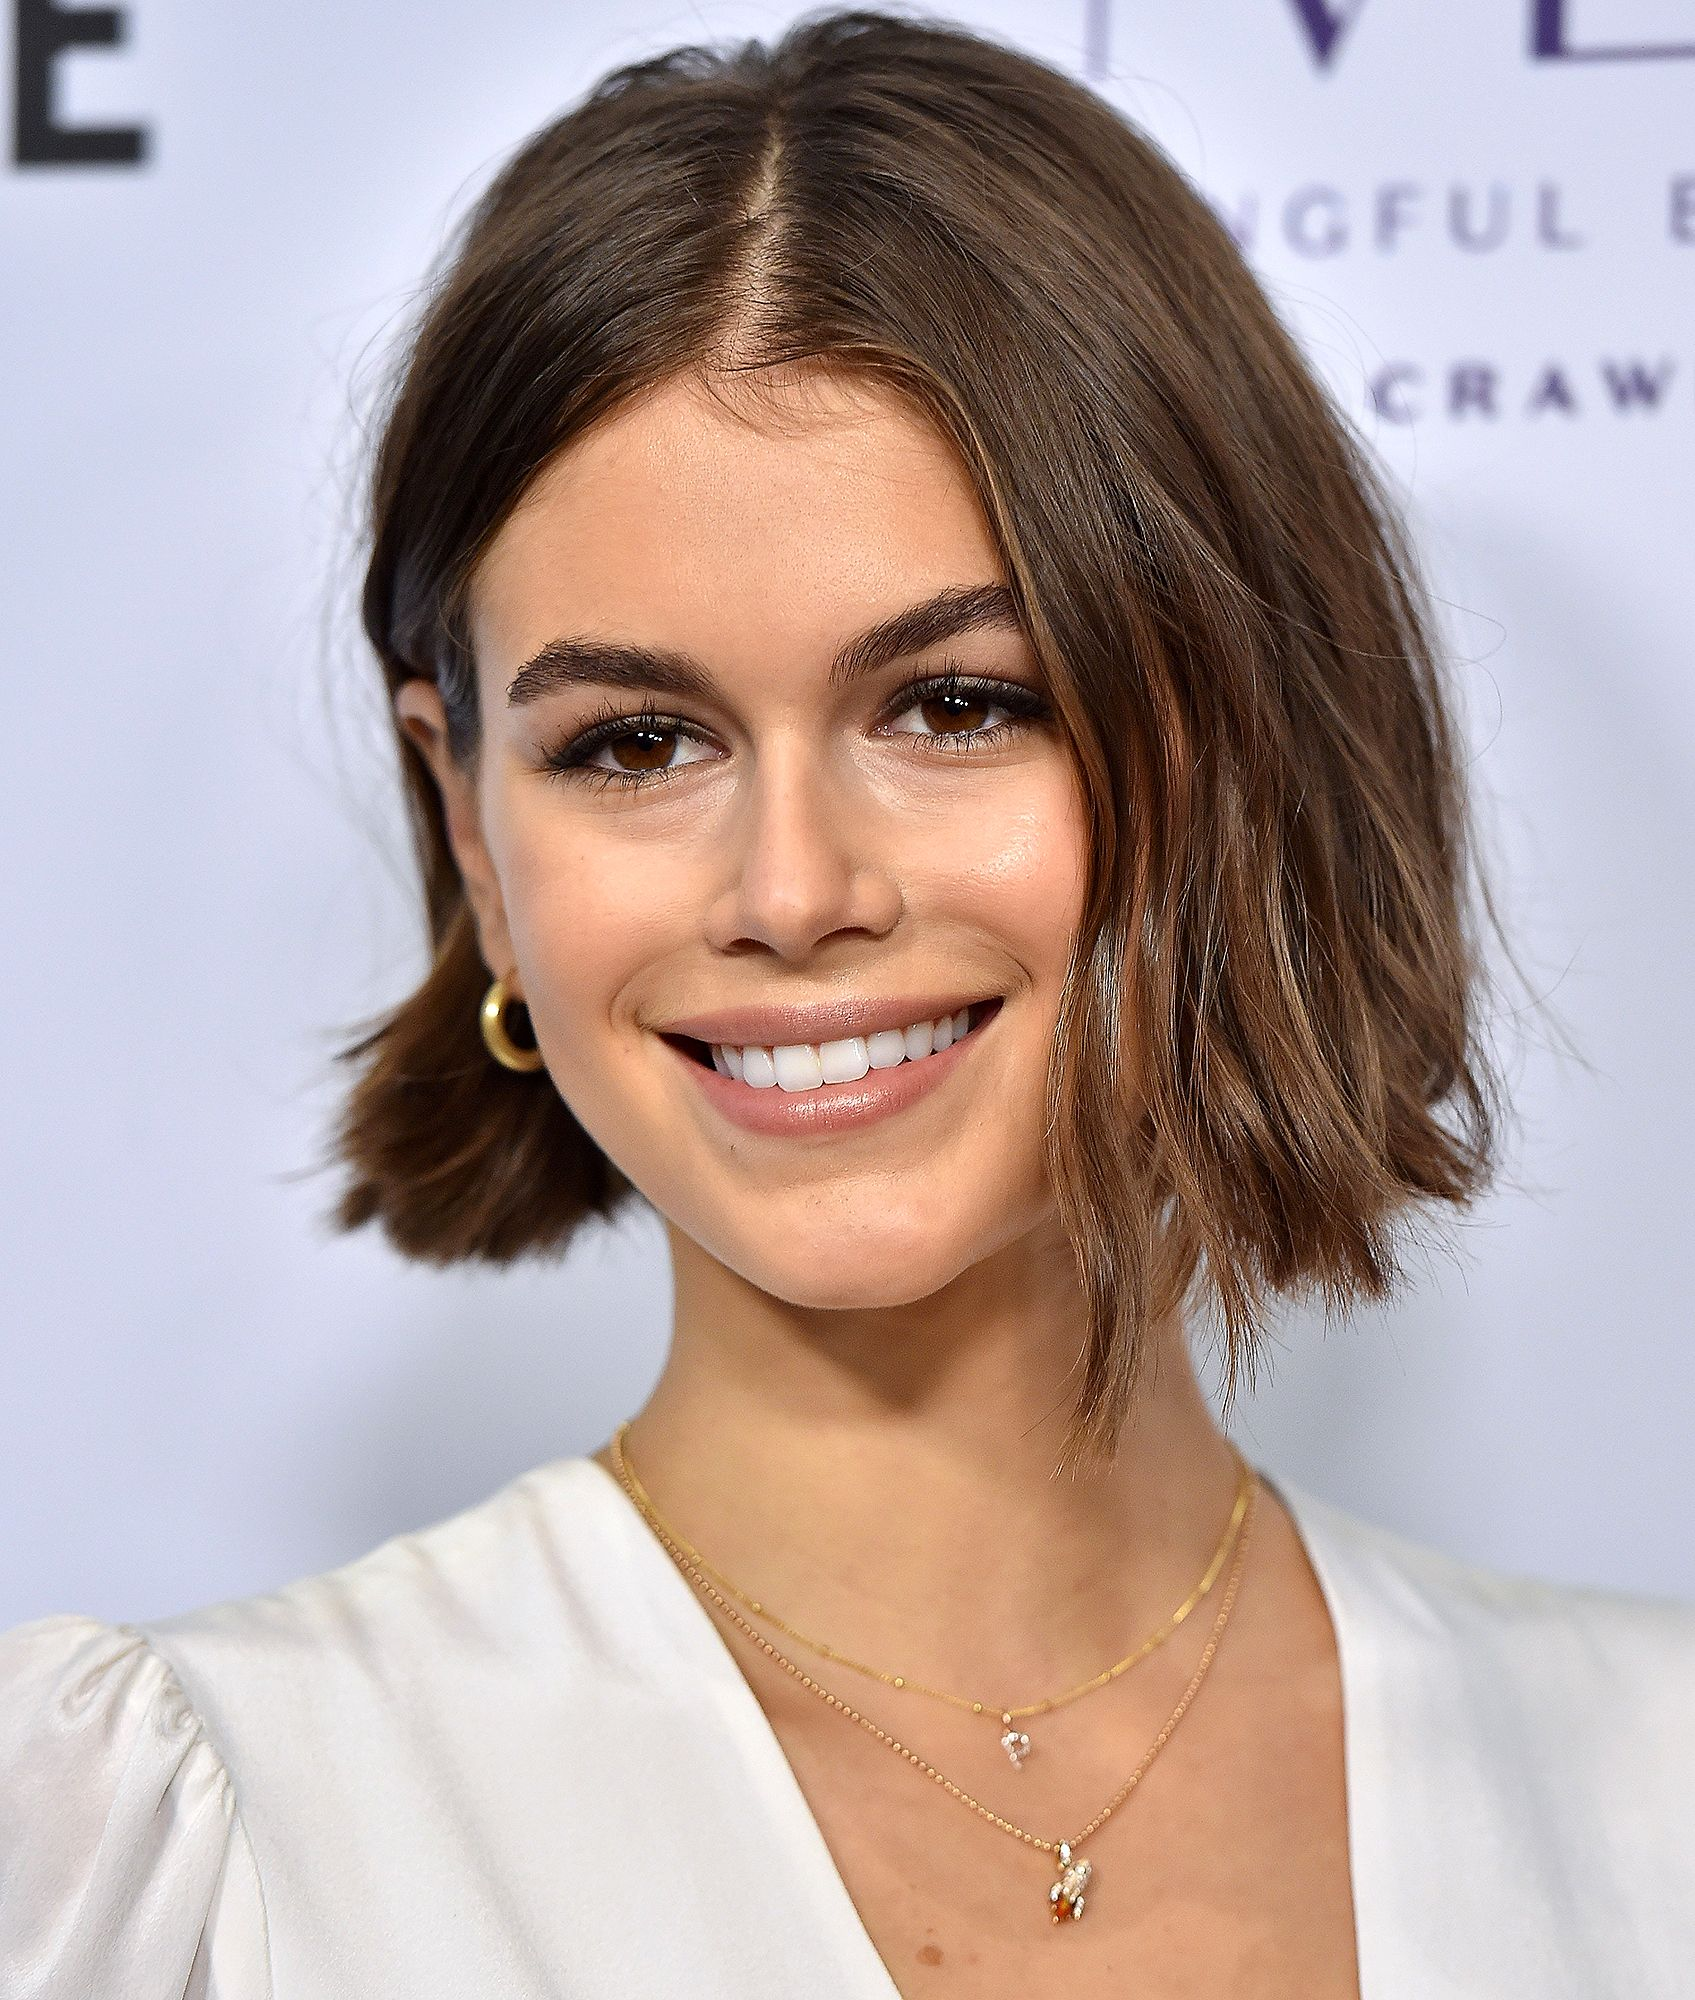 Kaia Gerber Wears 'P' Initial Pendant Necklace After Sparking Relationship Rumors with Pete Davidson